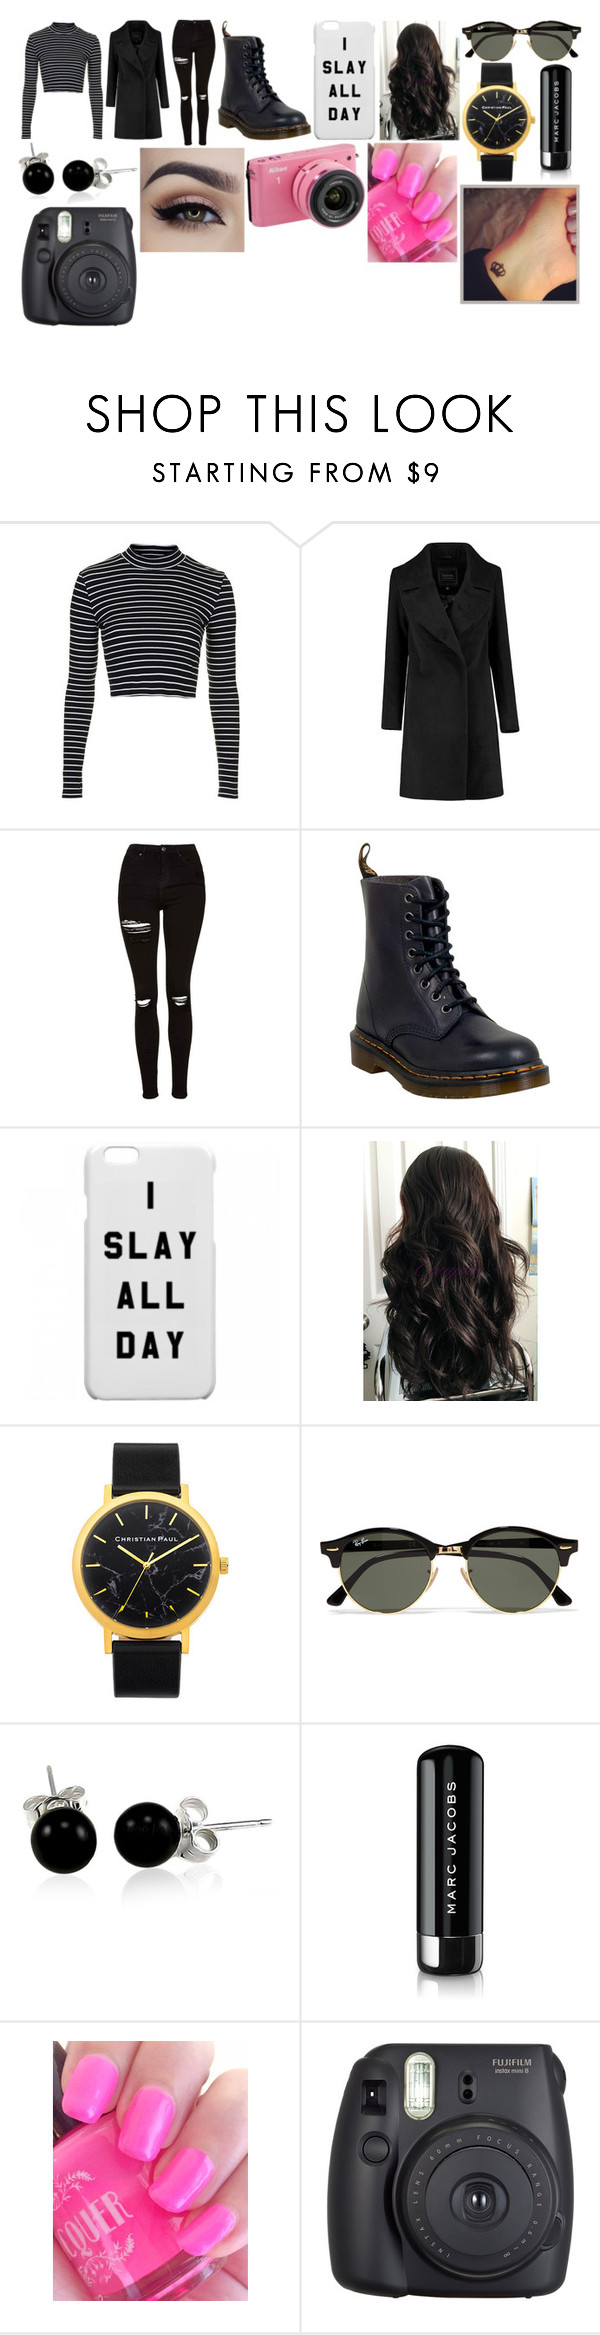 """""""Untitled #624"""" by athenajasminereyes ❤ liked on Polyvore featuring Topshop, Dr. Martens, Ray-Ban, Bling Jewelry, Marc Jacobs, Nikon and Fuji"""